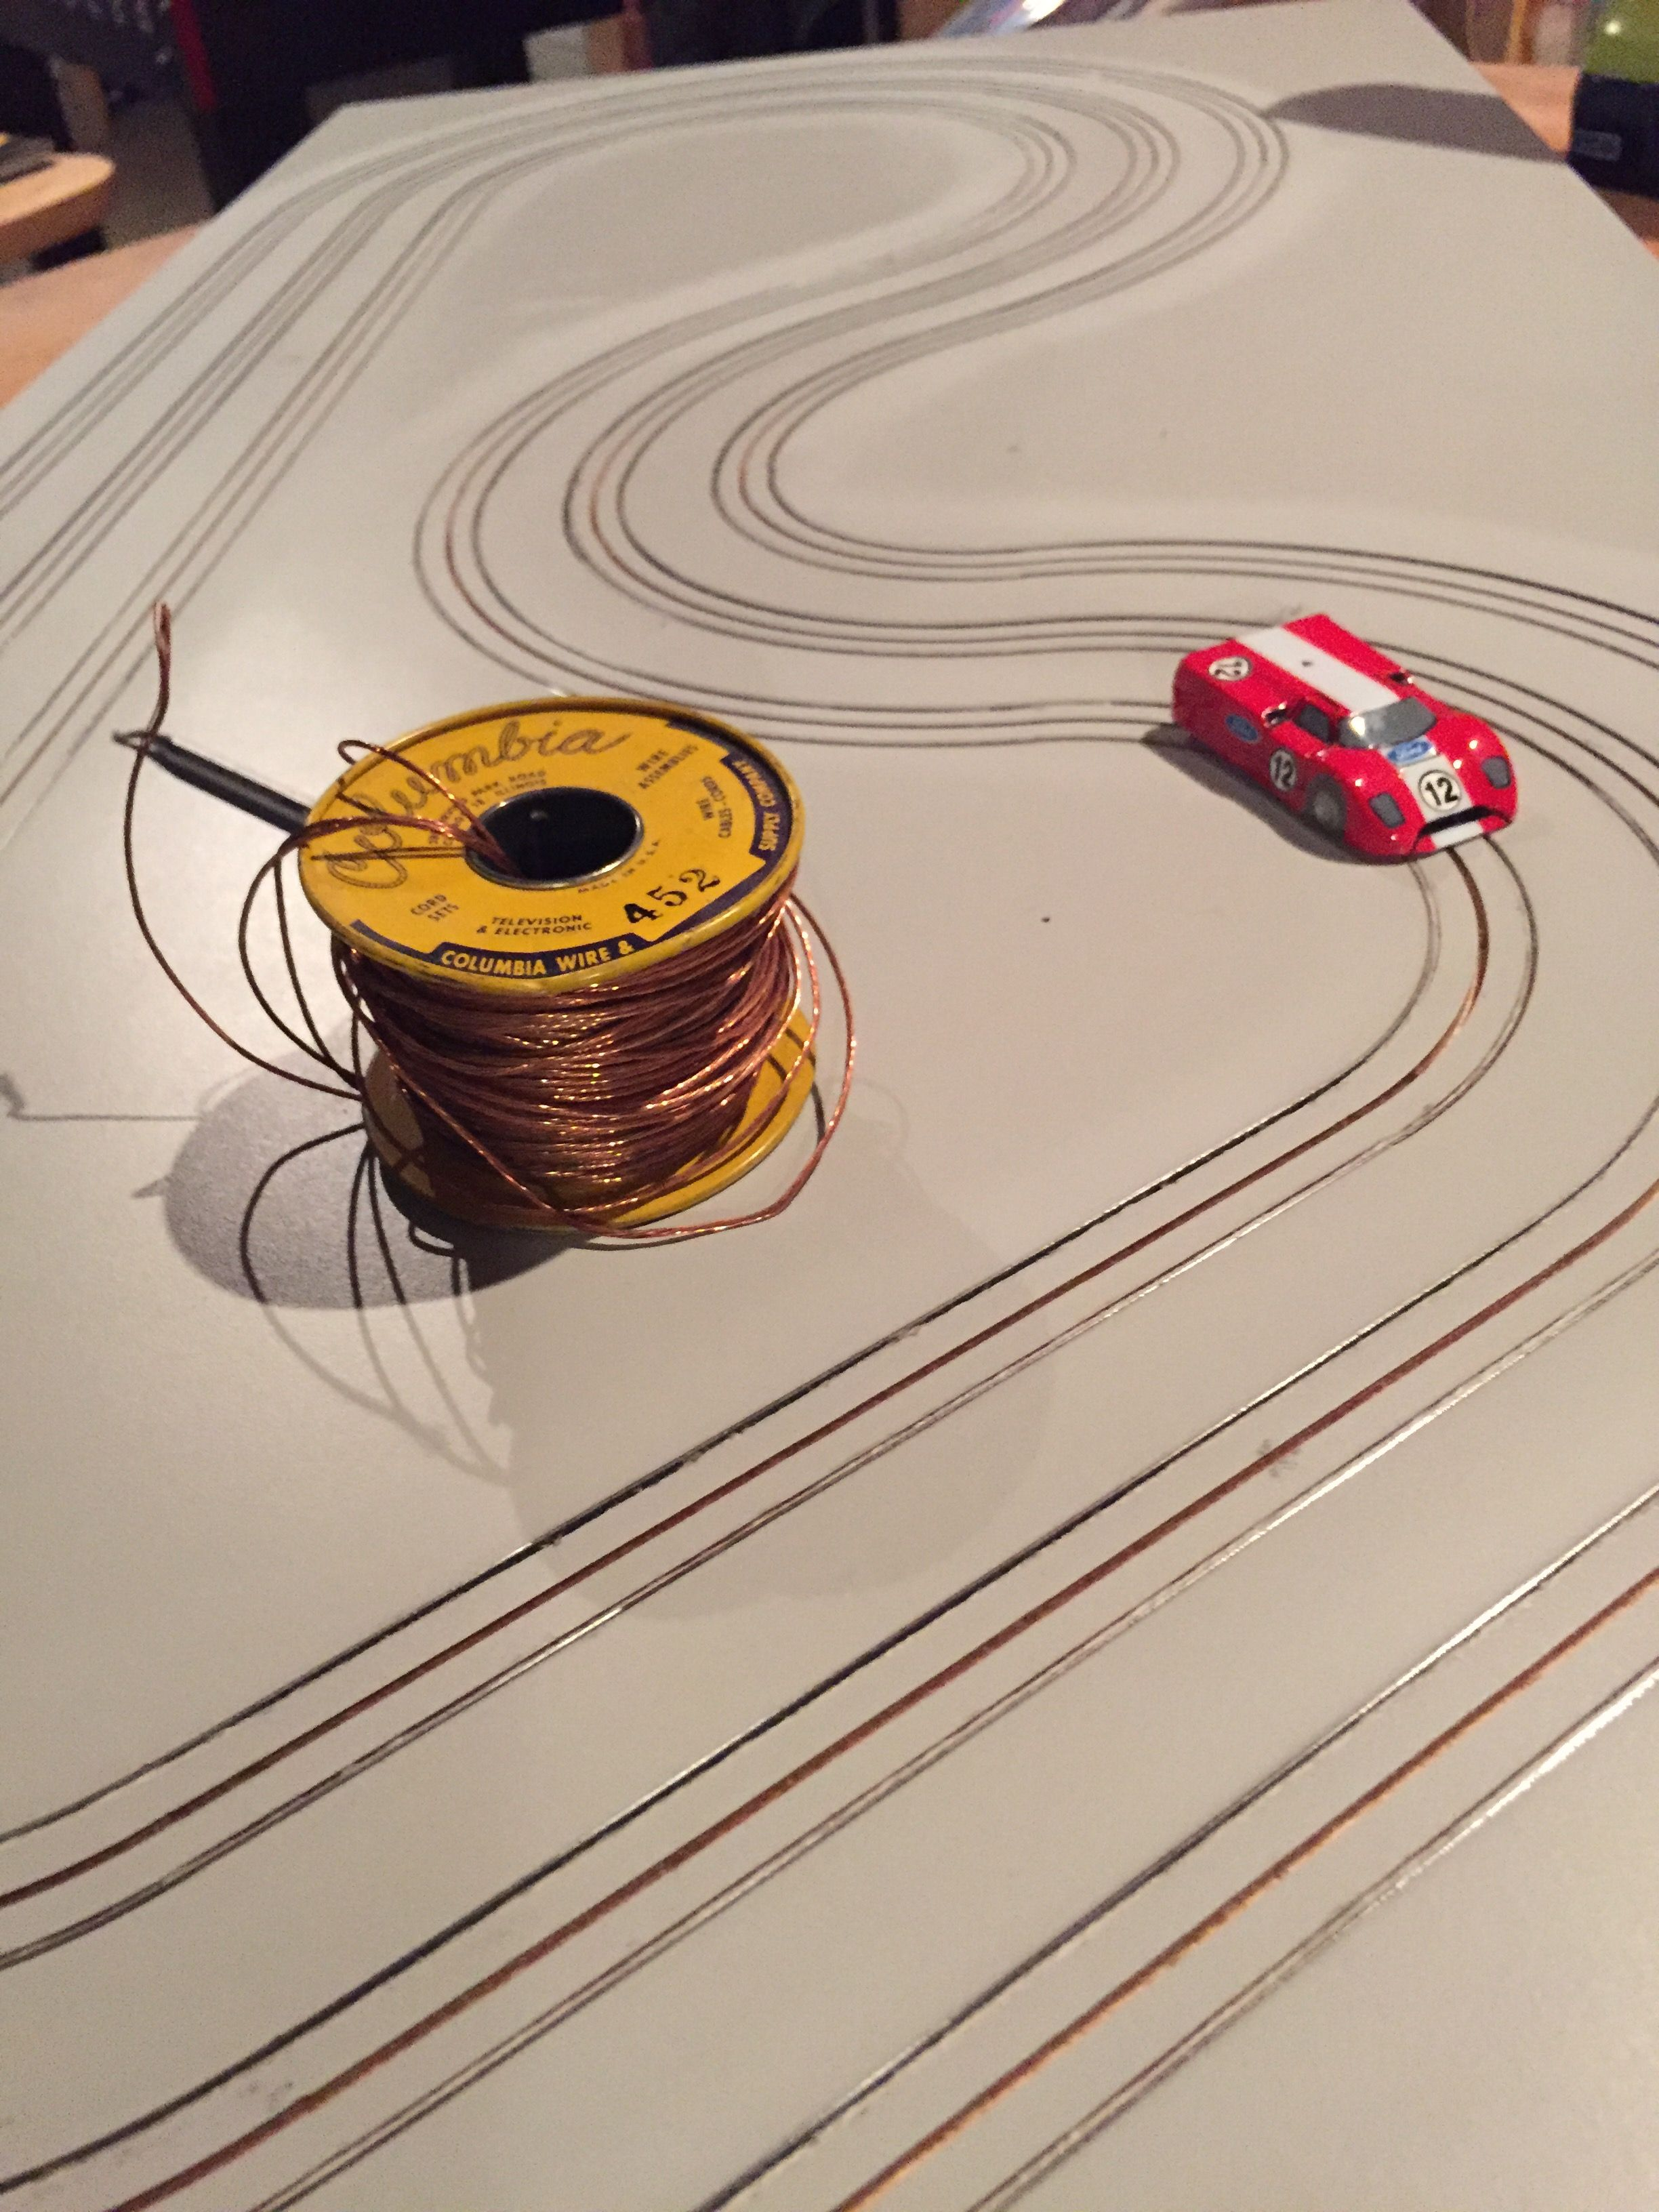 Ho routed slot car track.....finishing up